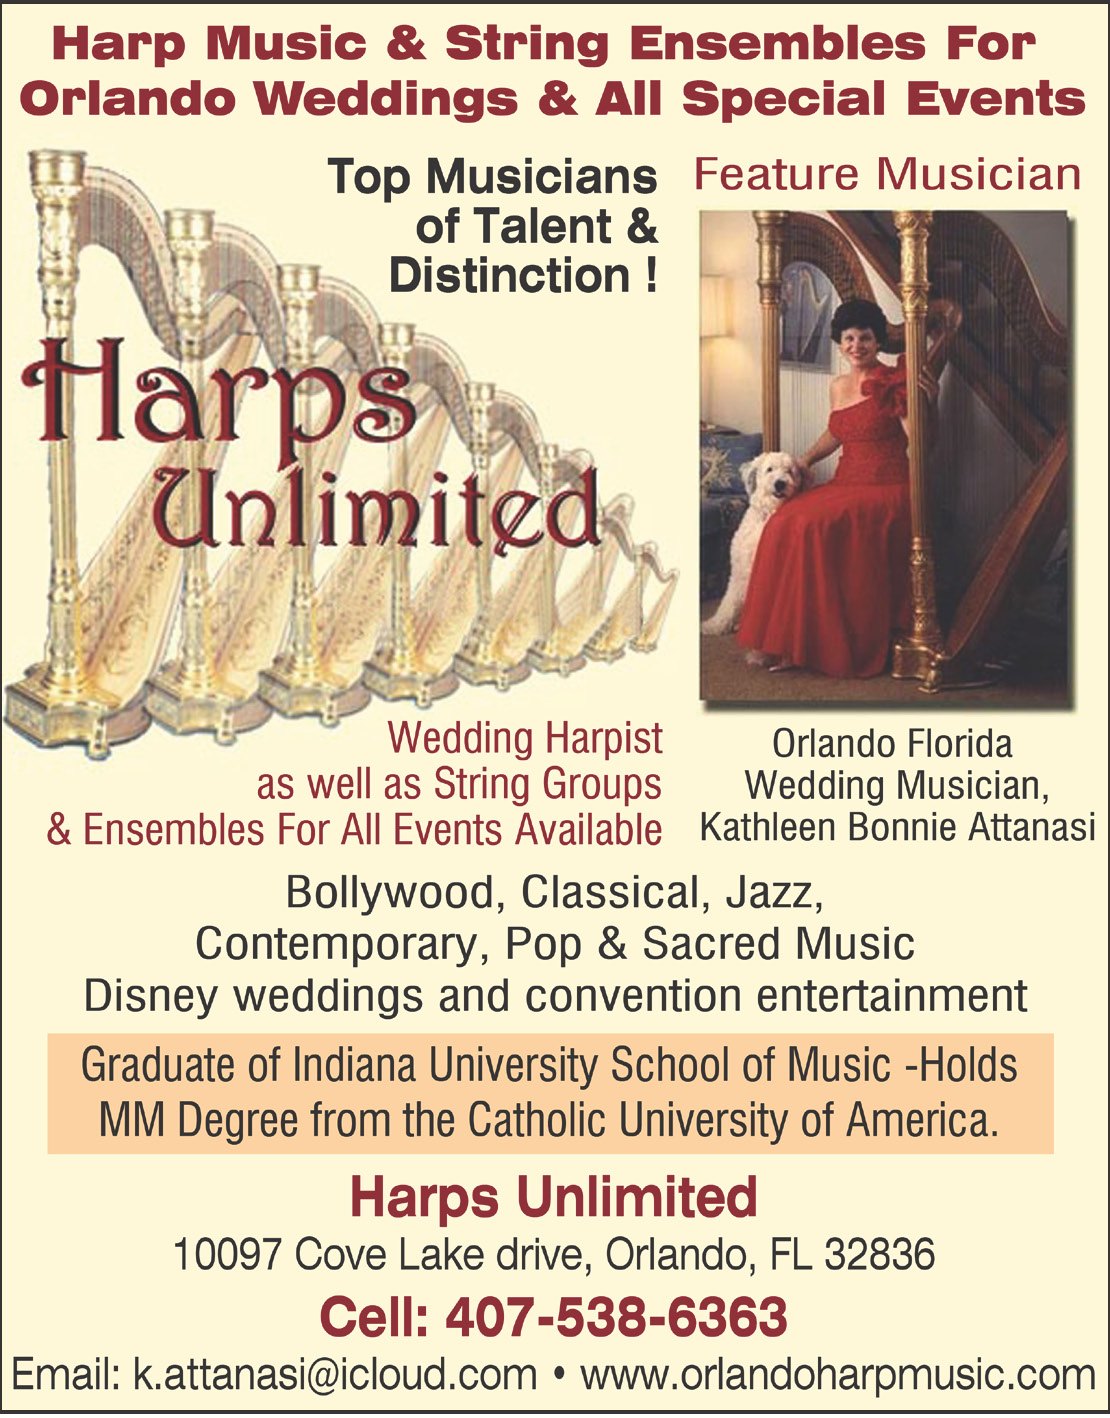 Harps Unlimited